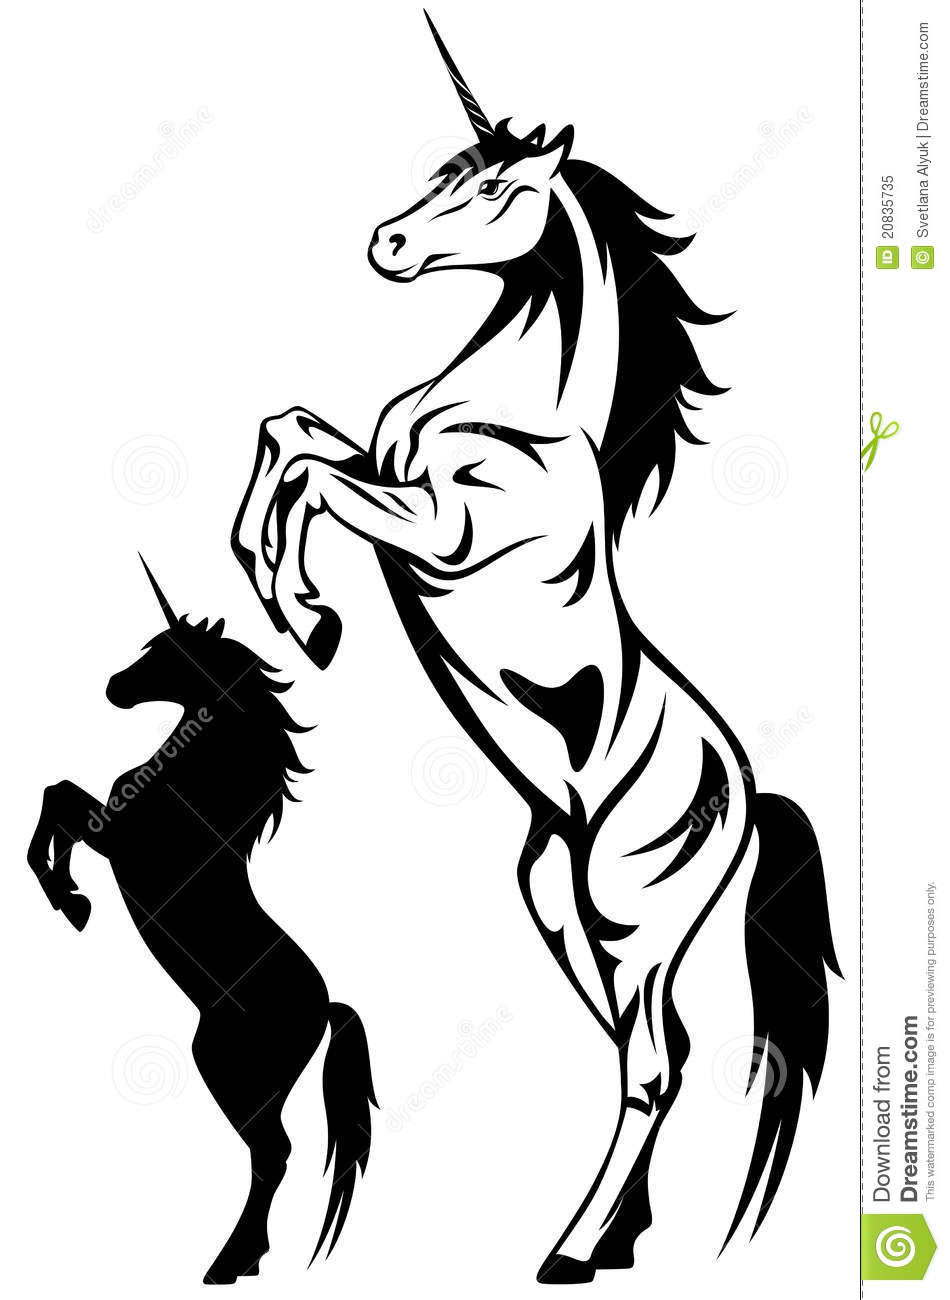 Unicorn Black And White Free Download Best Unicorn Black And White